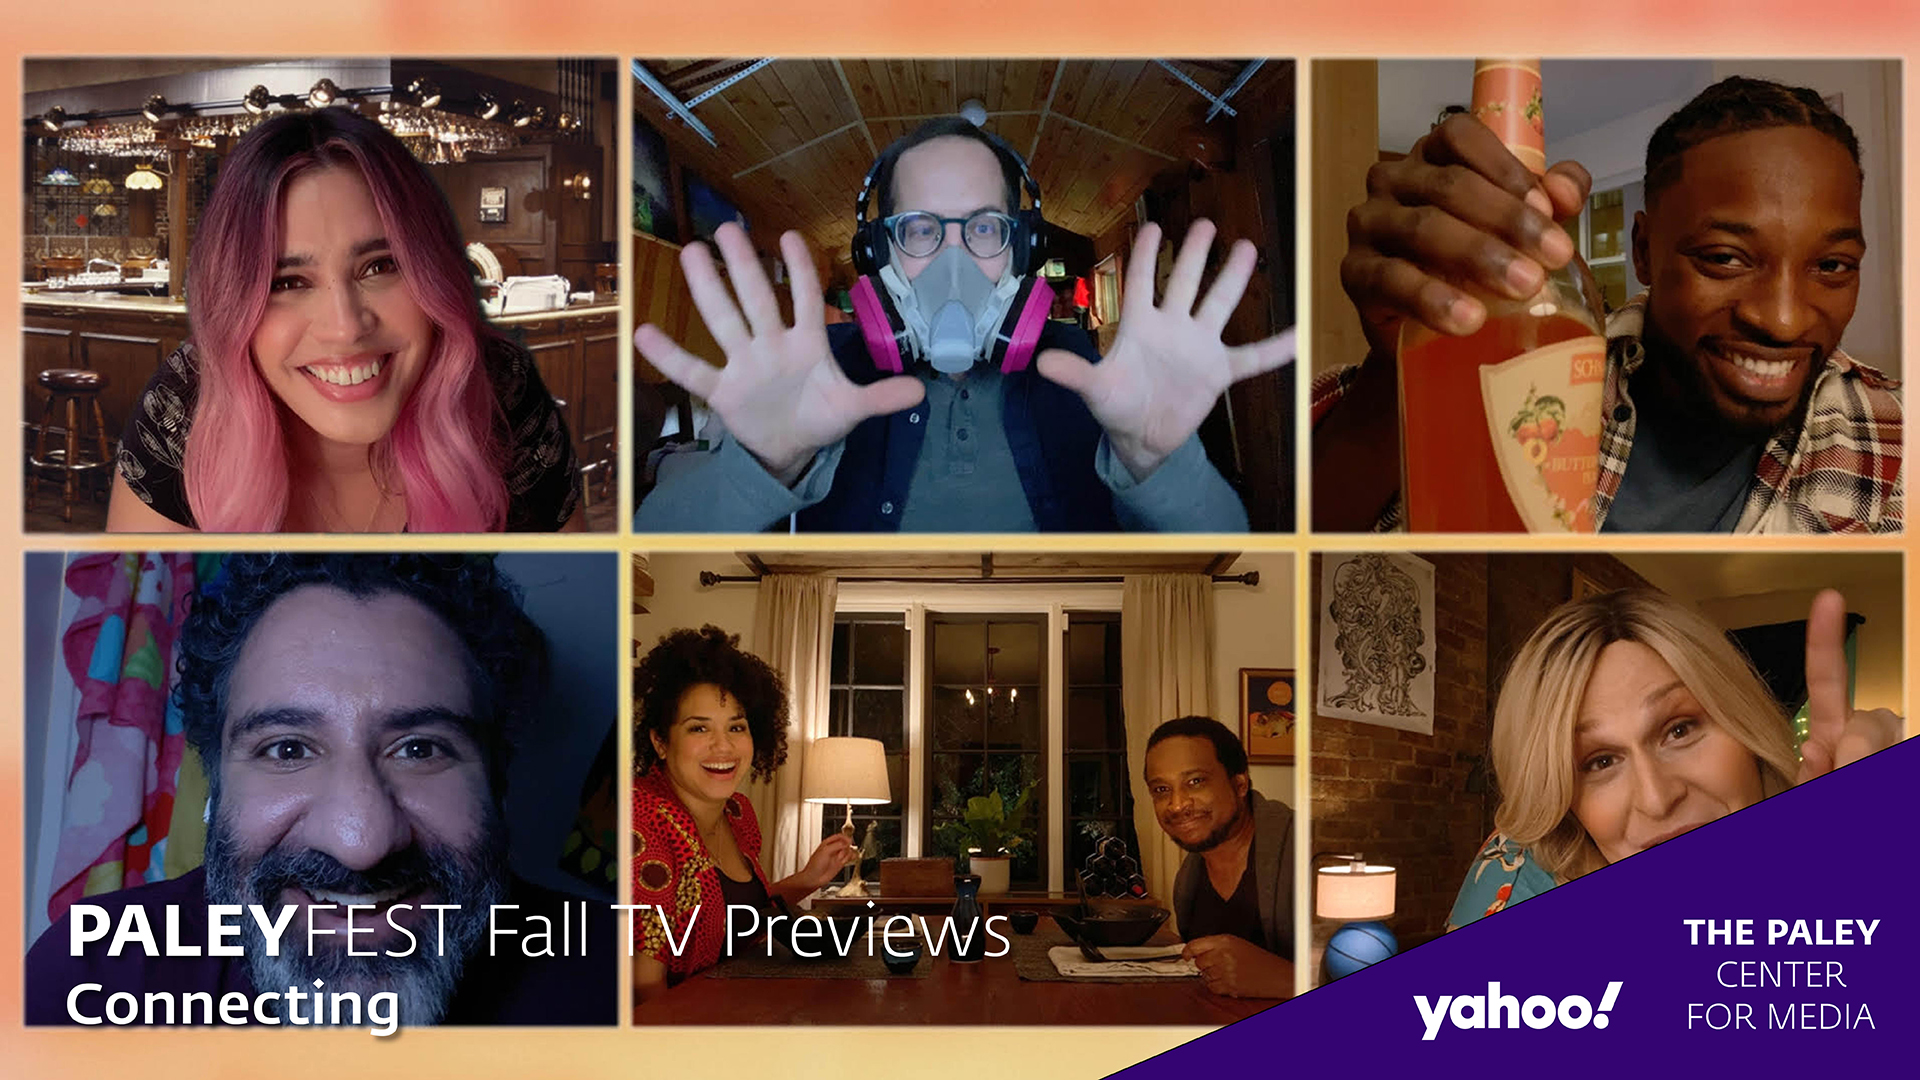 Connecting... at PaleyFest Fall TV Previews 2020